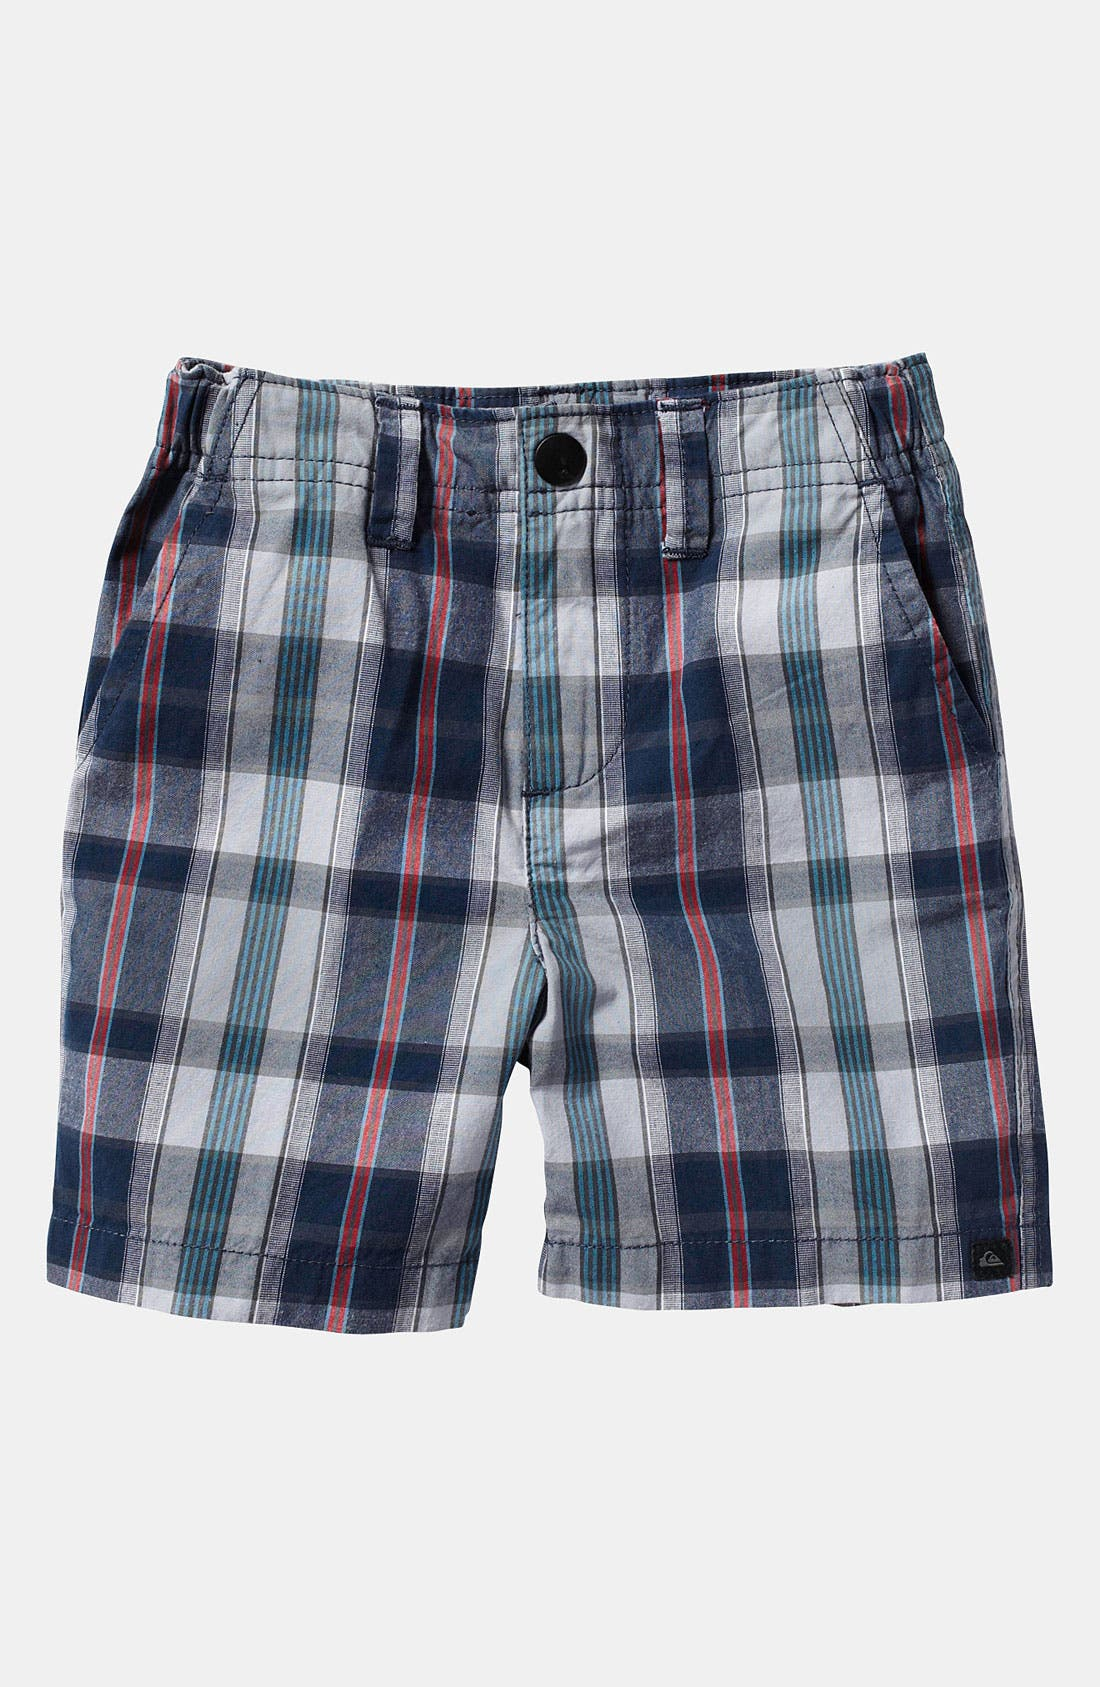 Alternate Image 1 Selected - Quiksilver 'Bookend' Shorts (Infant)